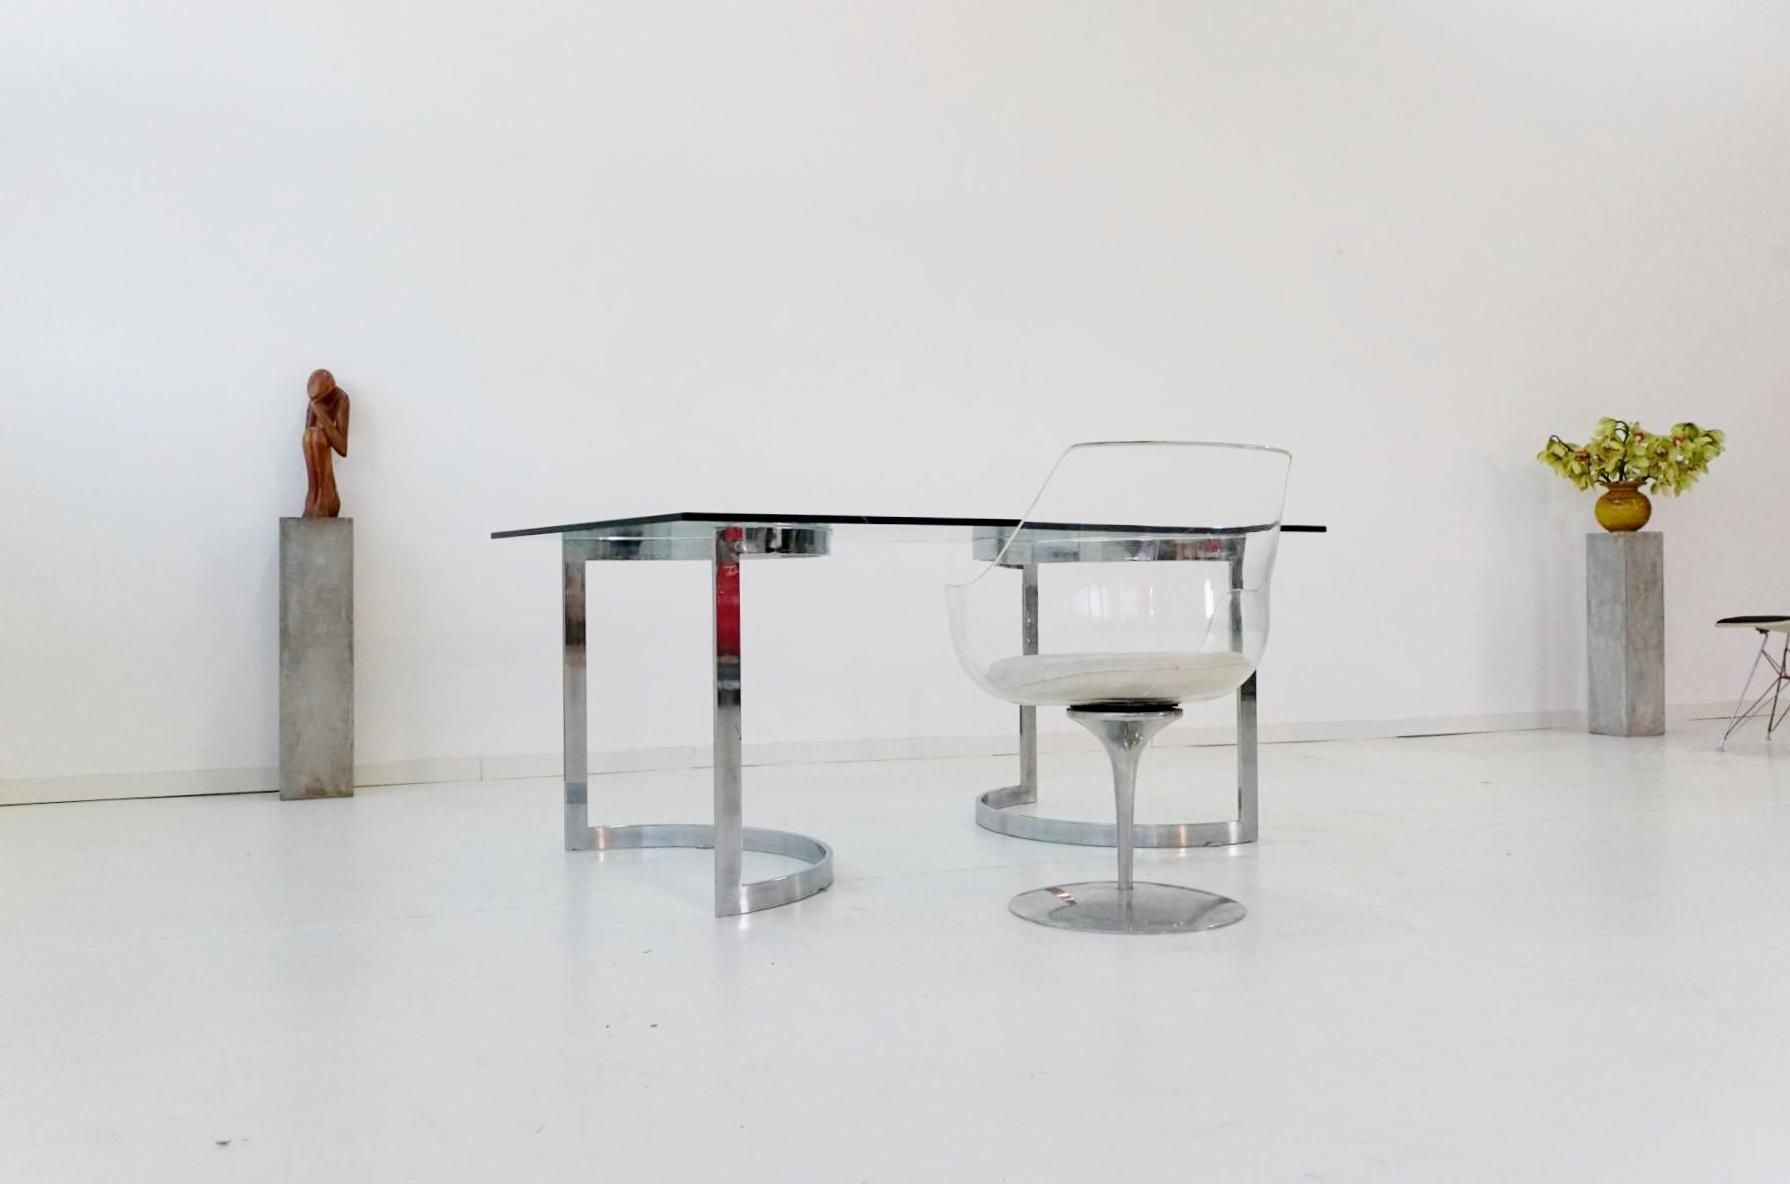 Space Age Chrome & Glass Dining Table by Milo Baughman 1970s for